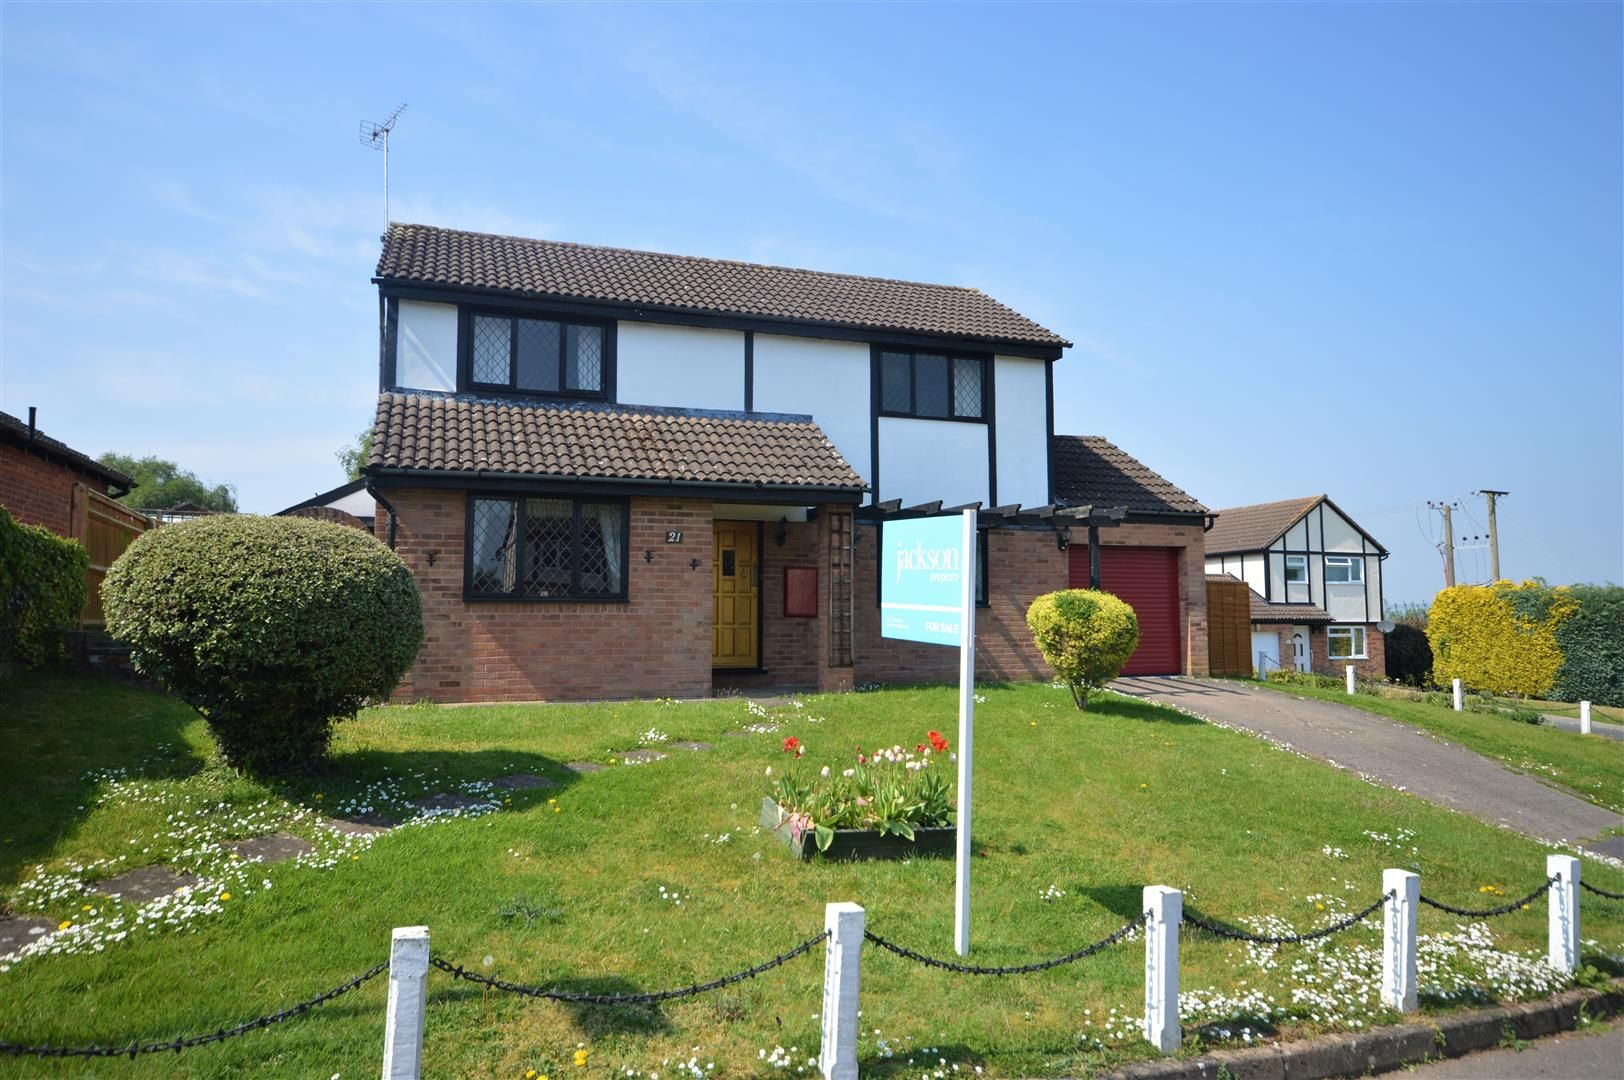 3 bed detached for sale in Leominster  - Property Image 12